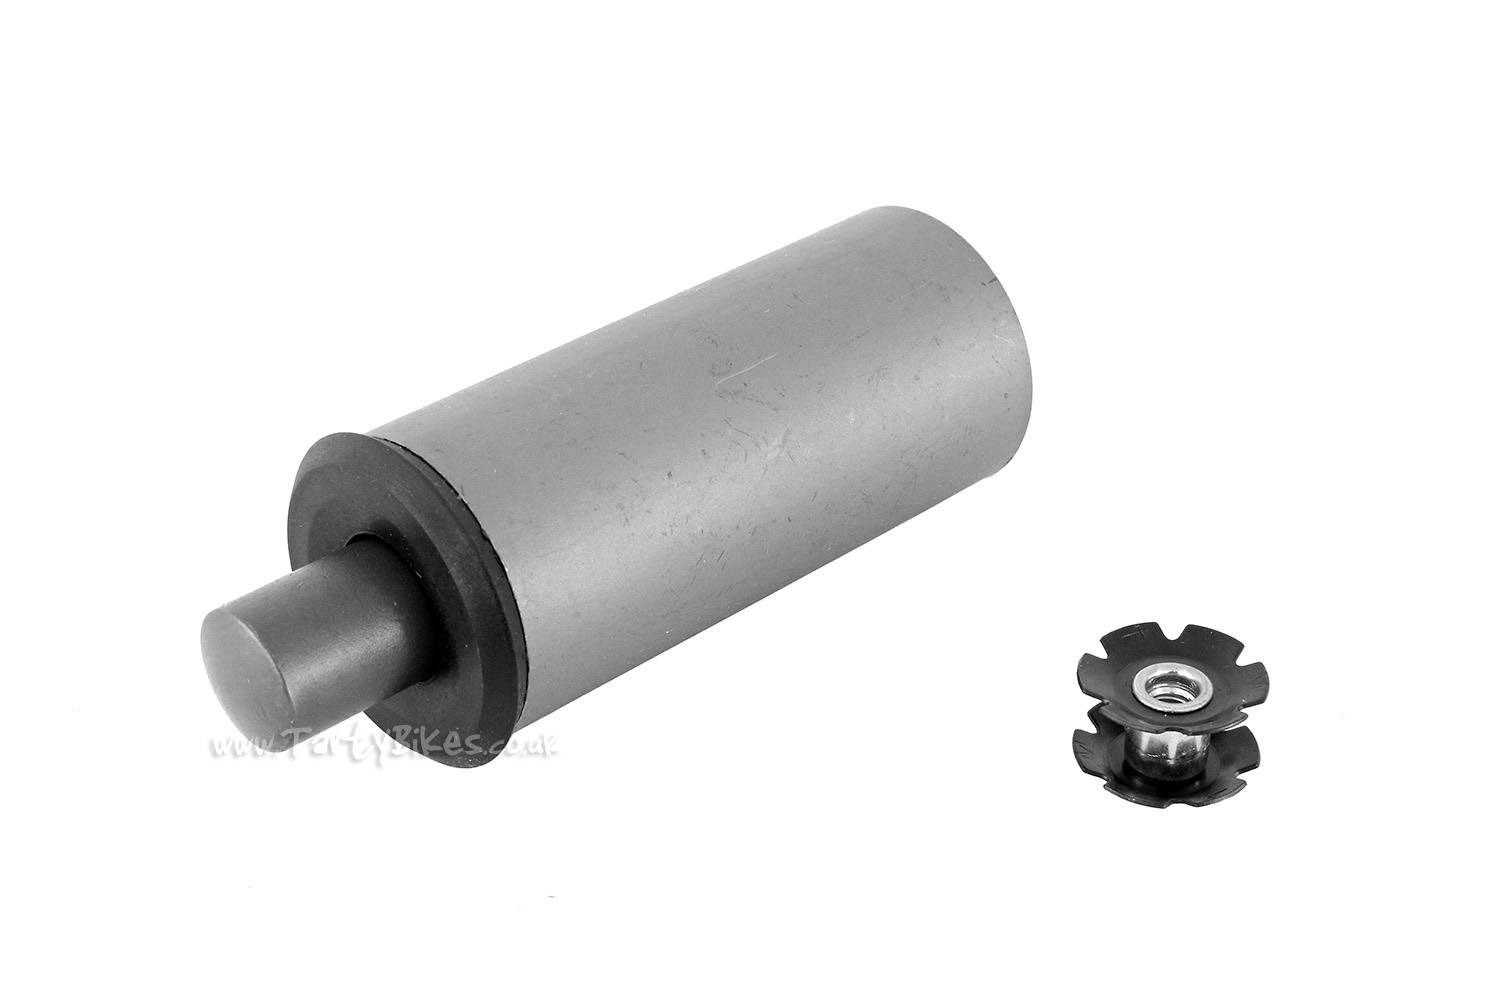 TartyBikes Star Nut Fitting